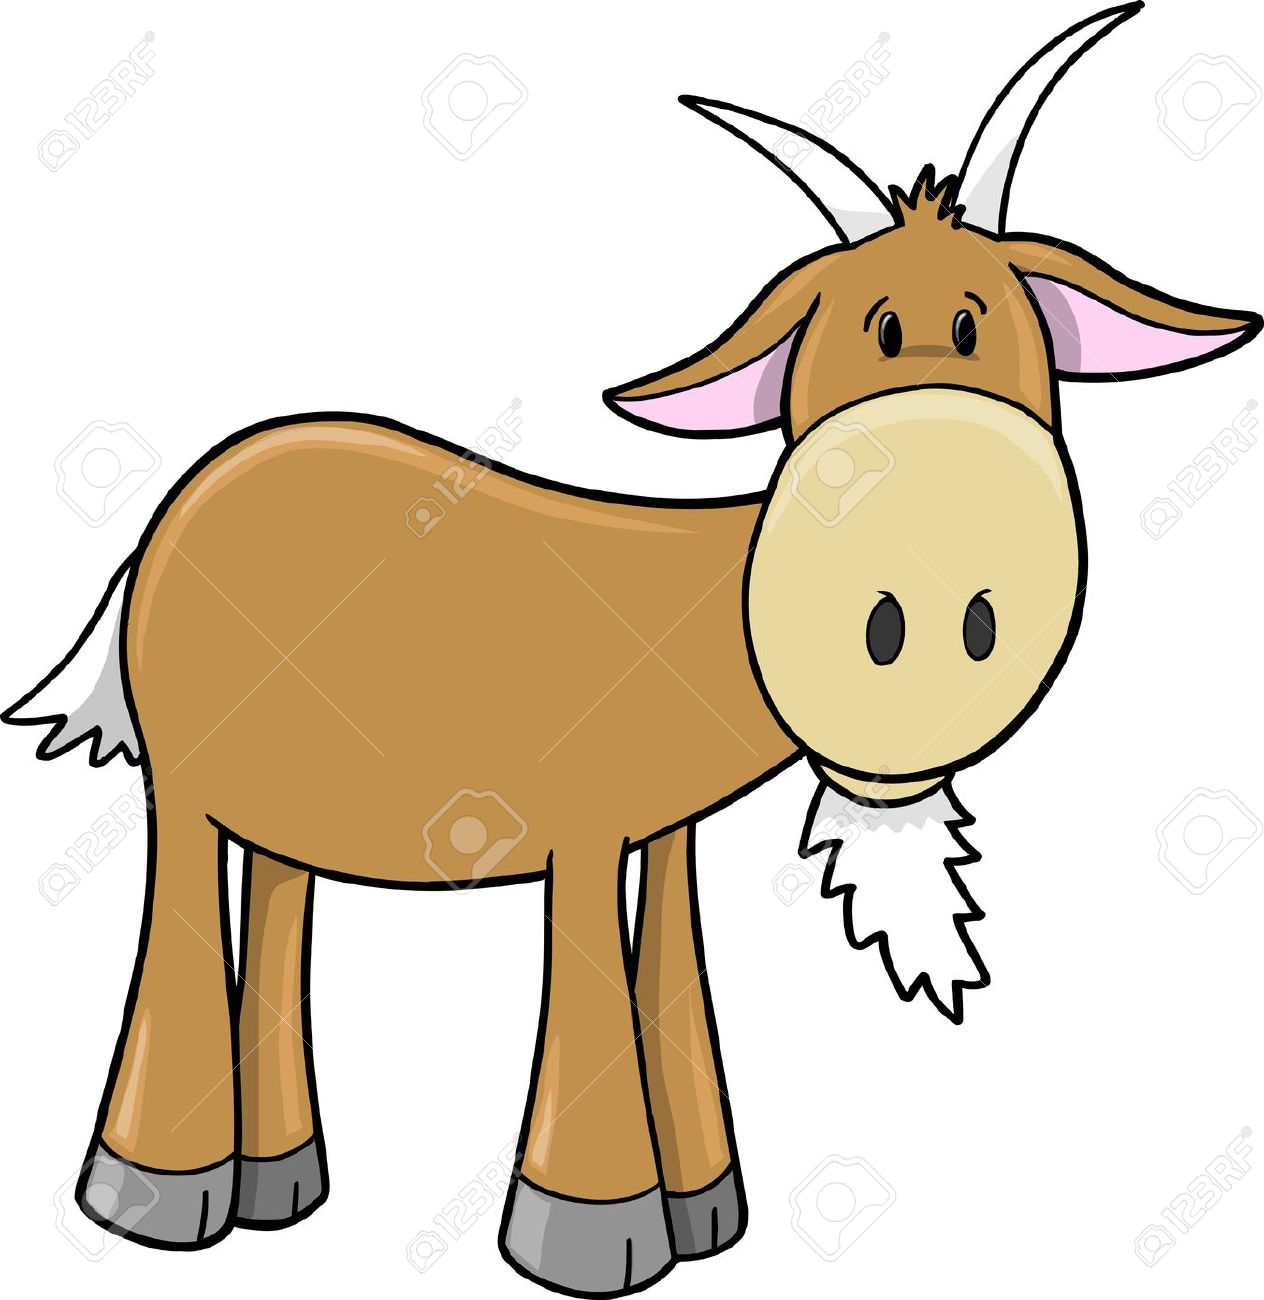 Brown goat clipart 20 free Cliparts | Download images on